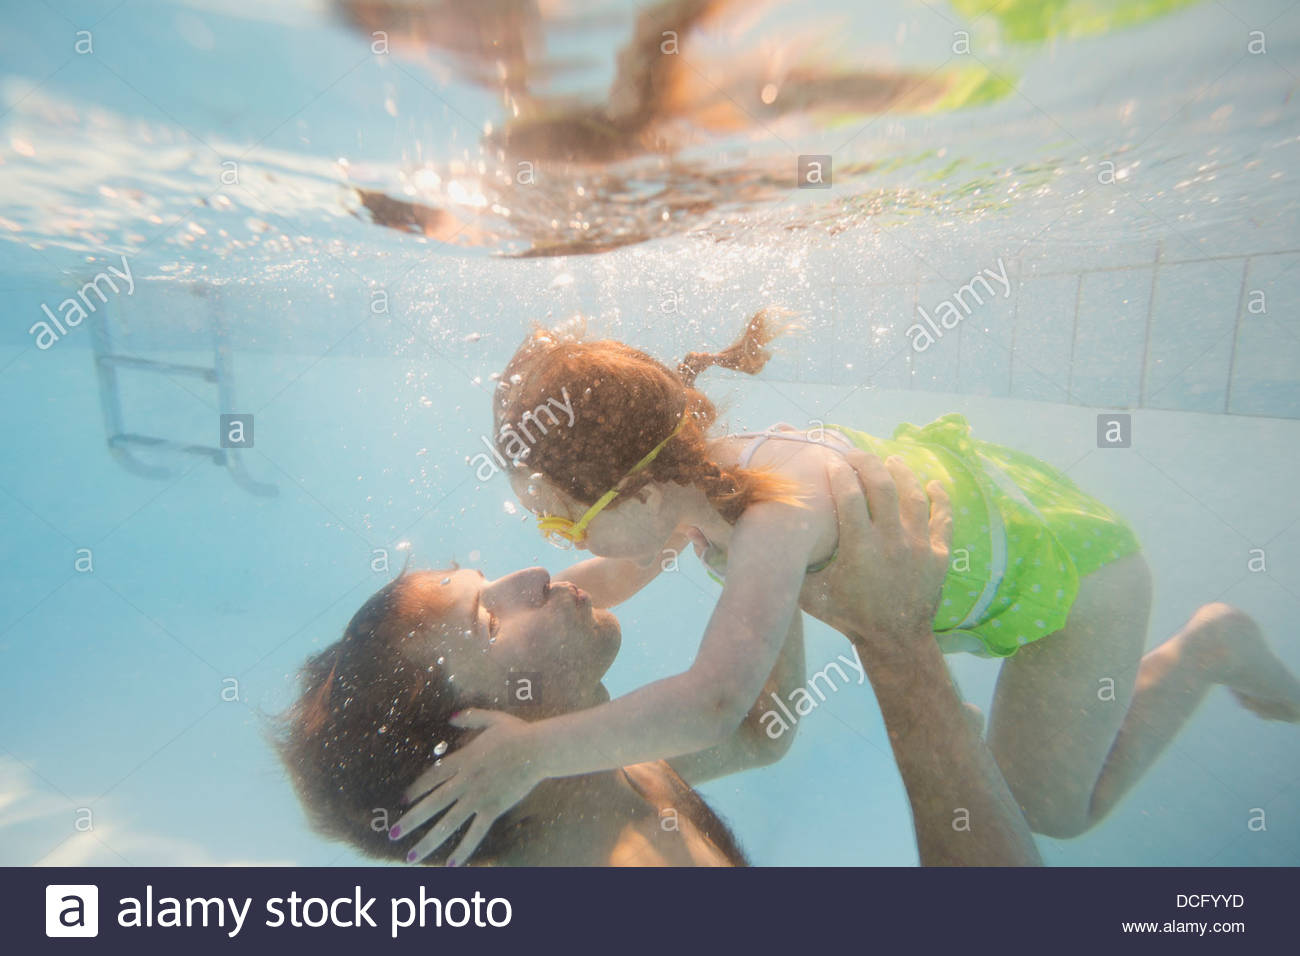 Father and daughter underwater in swimming pool - Stock Image